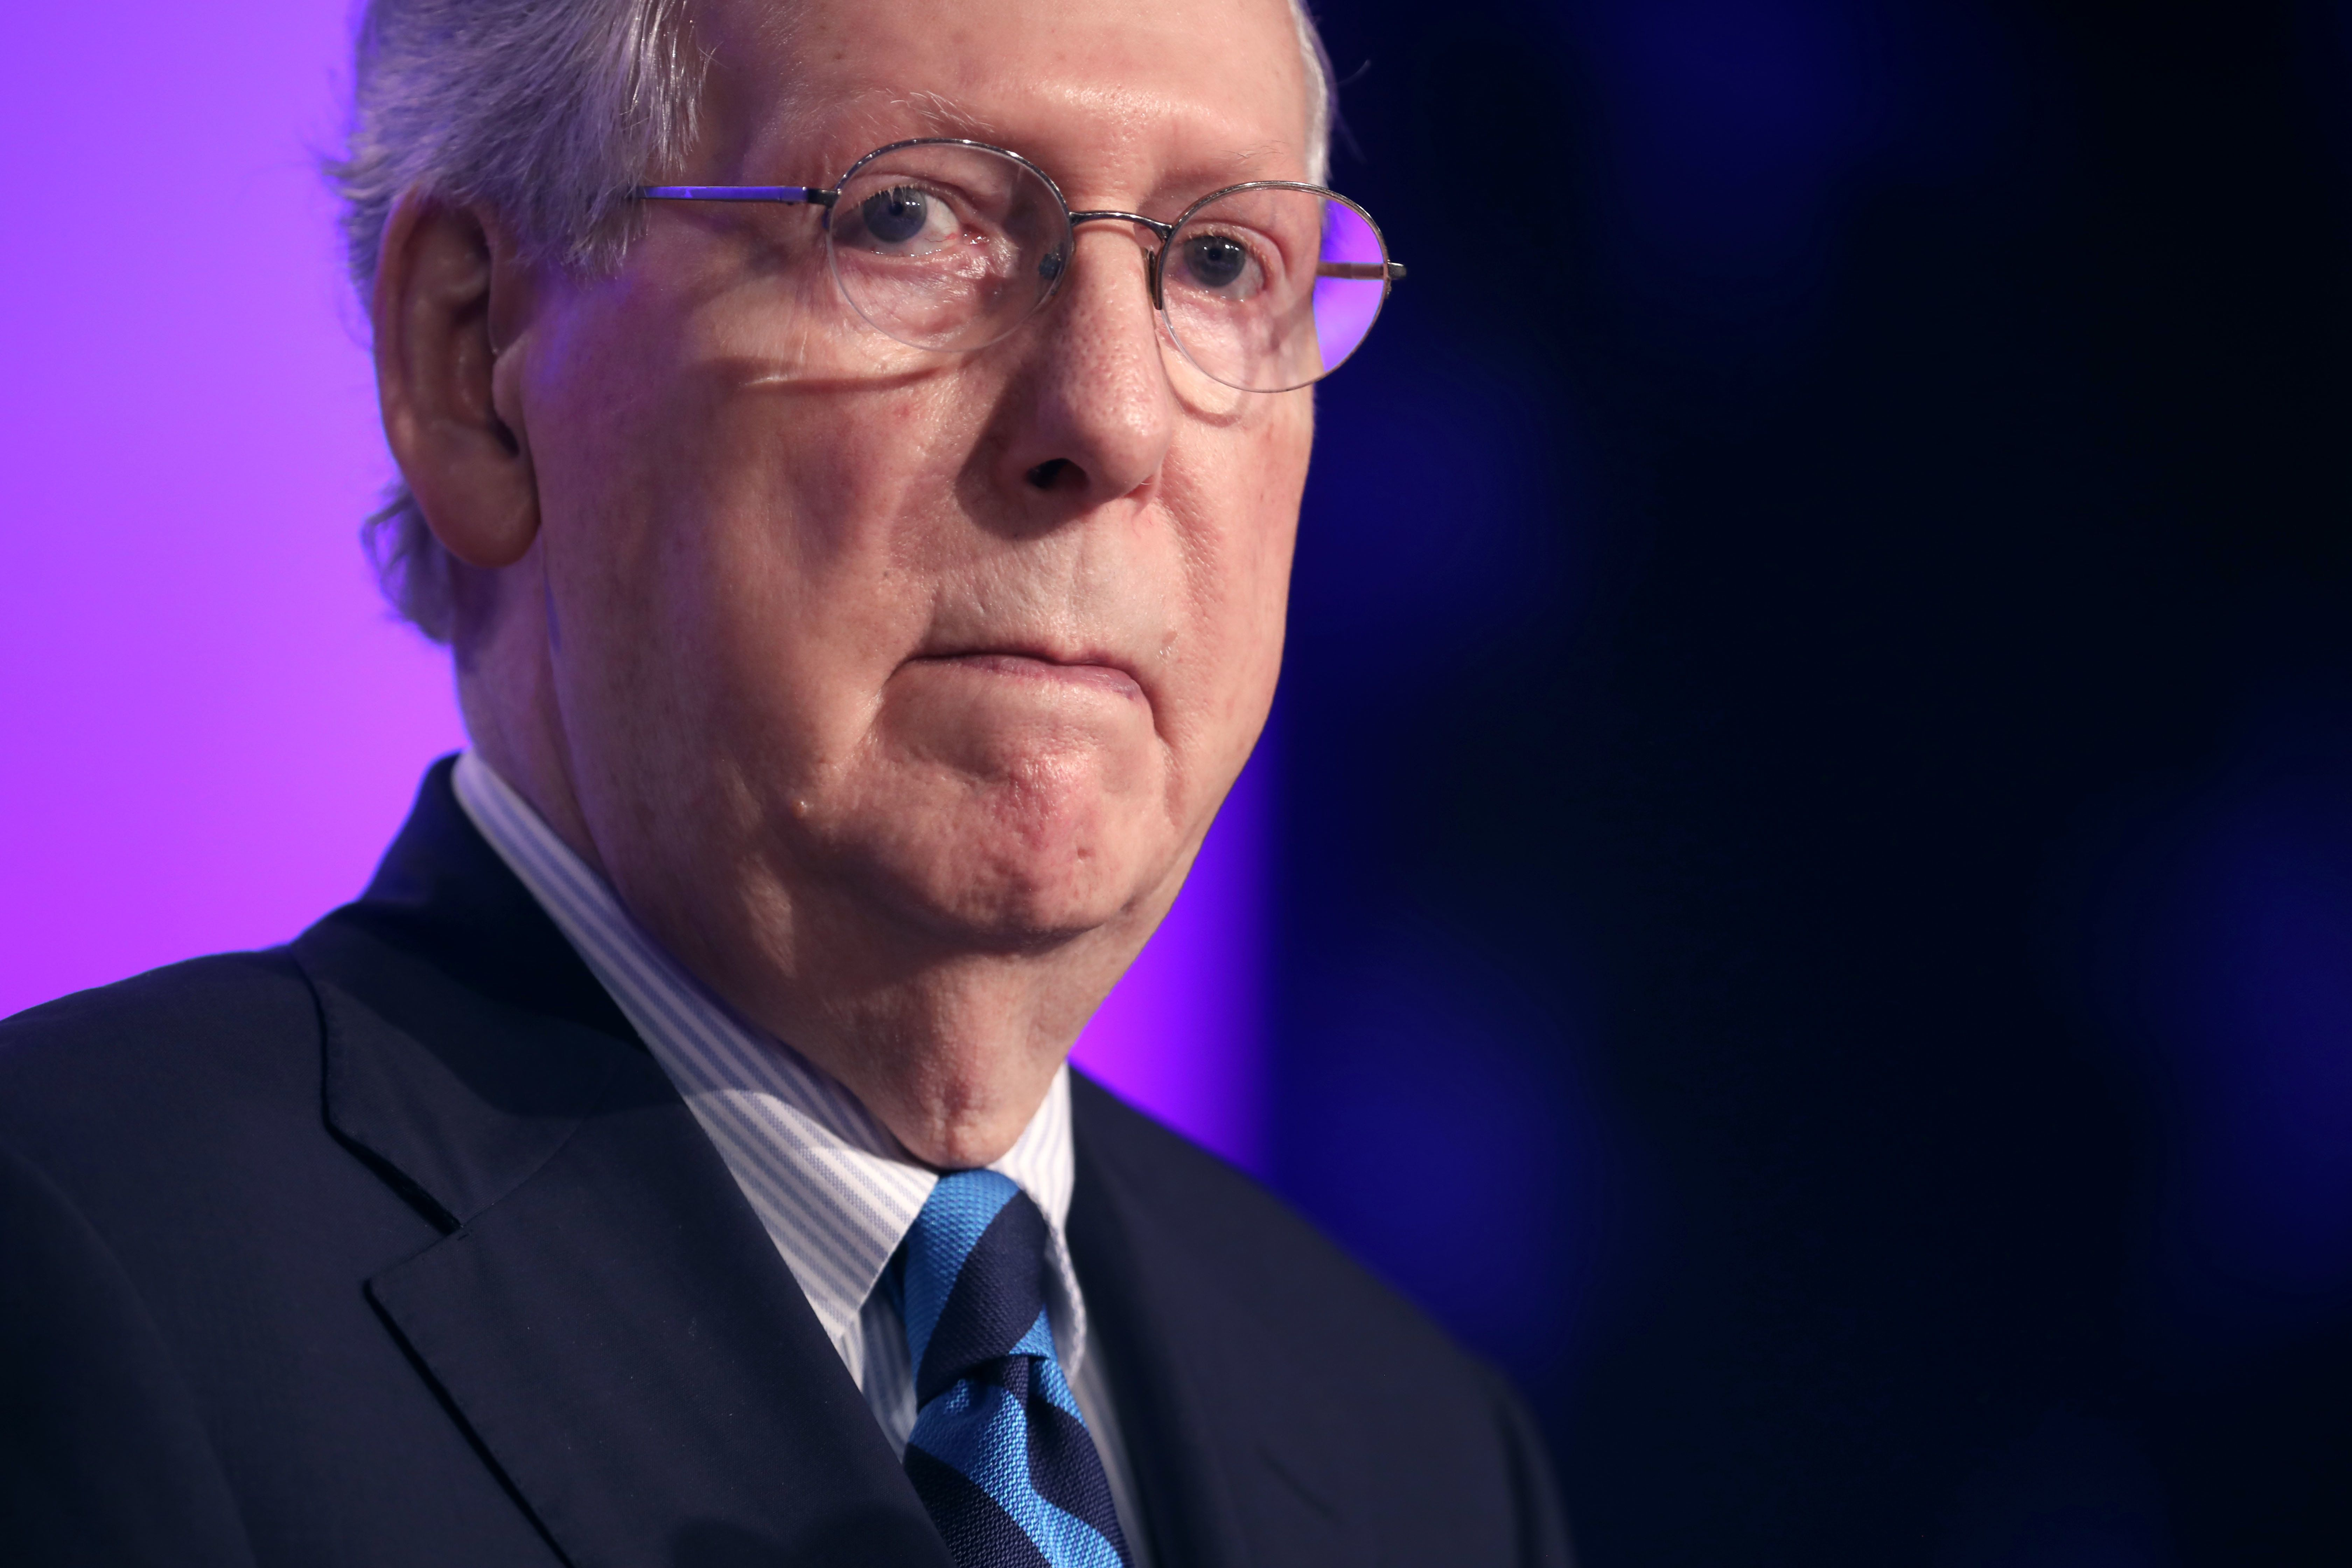 WASHINGTON, DC - SEPTEMBER 21: Senate Majority Leader Mitch McConnell (R-KY) addresses the Family Research Council's Value Voters Summit at the Omni Shoreham Hotel September 21, 2018 in Washington, DC. Hosted by the conservative Christian council, the summit is the 12th annual gathering of activists and elected officials who oppose gay marriage and abortion and support the confirmation of Judge Brett Kavanaugh to the U.S. Supreme Court. (Photo by Chip Somodevilla/Getty Images)